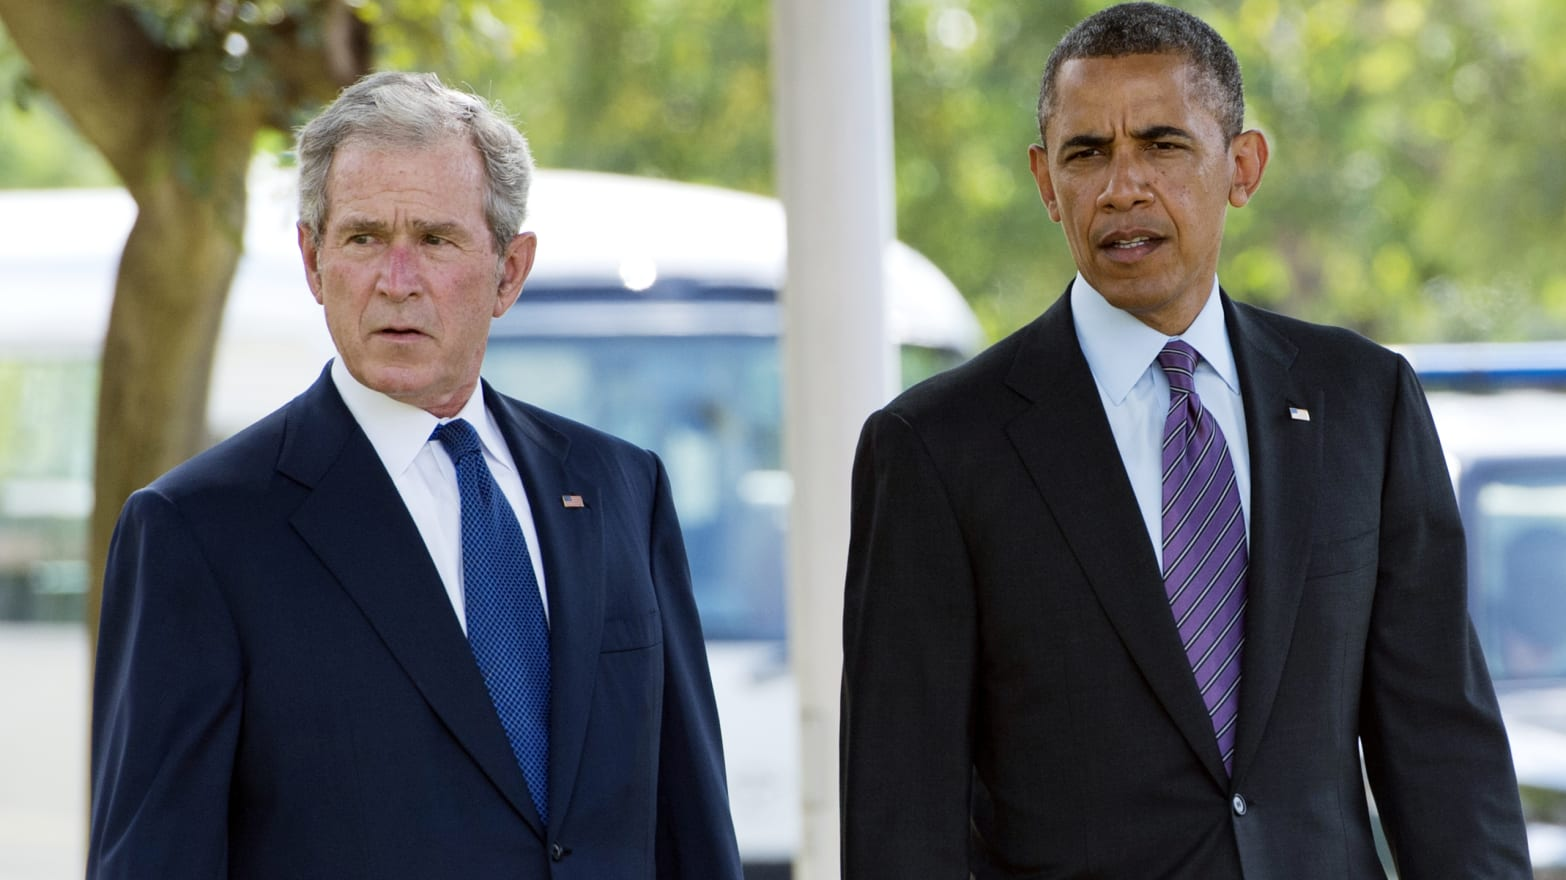 George W. Bush, Barack Obama and Our Era of Bipartisan Ineptitude